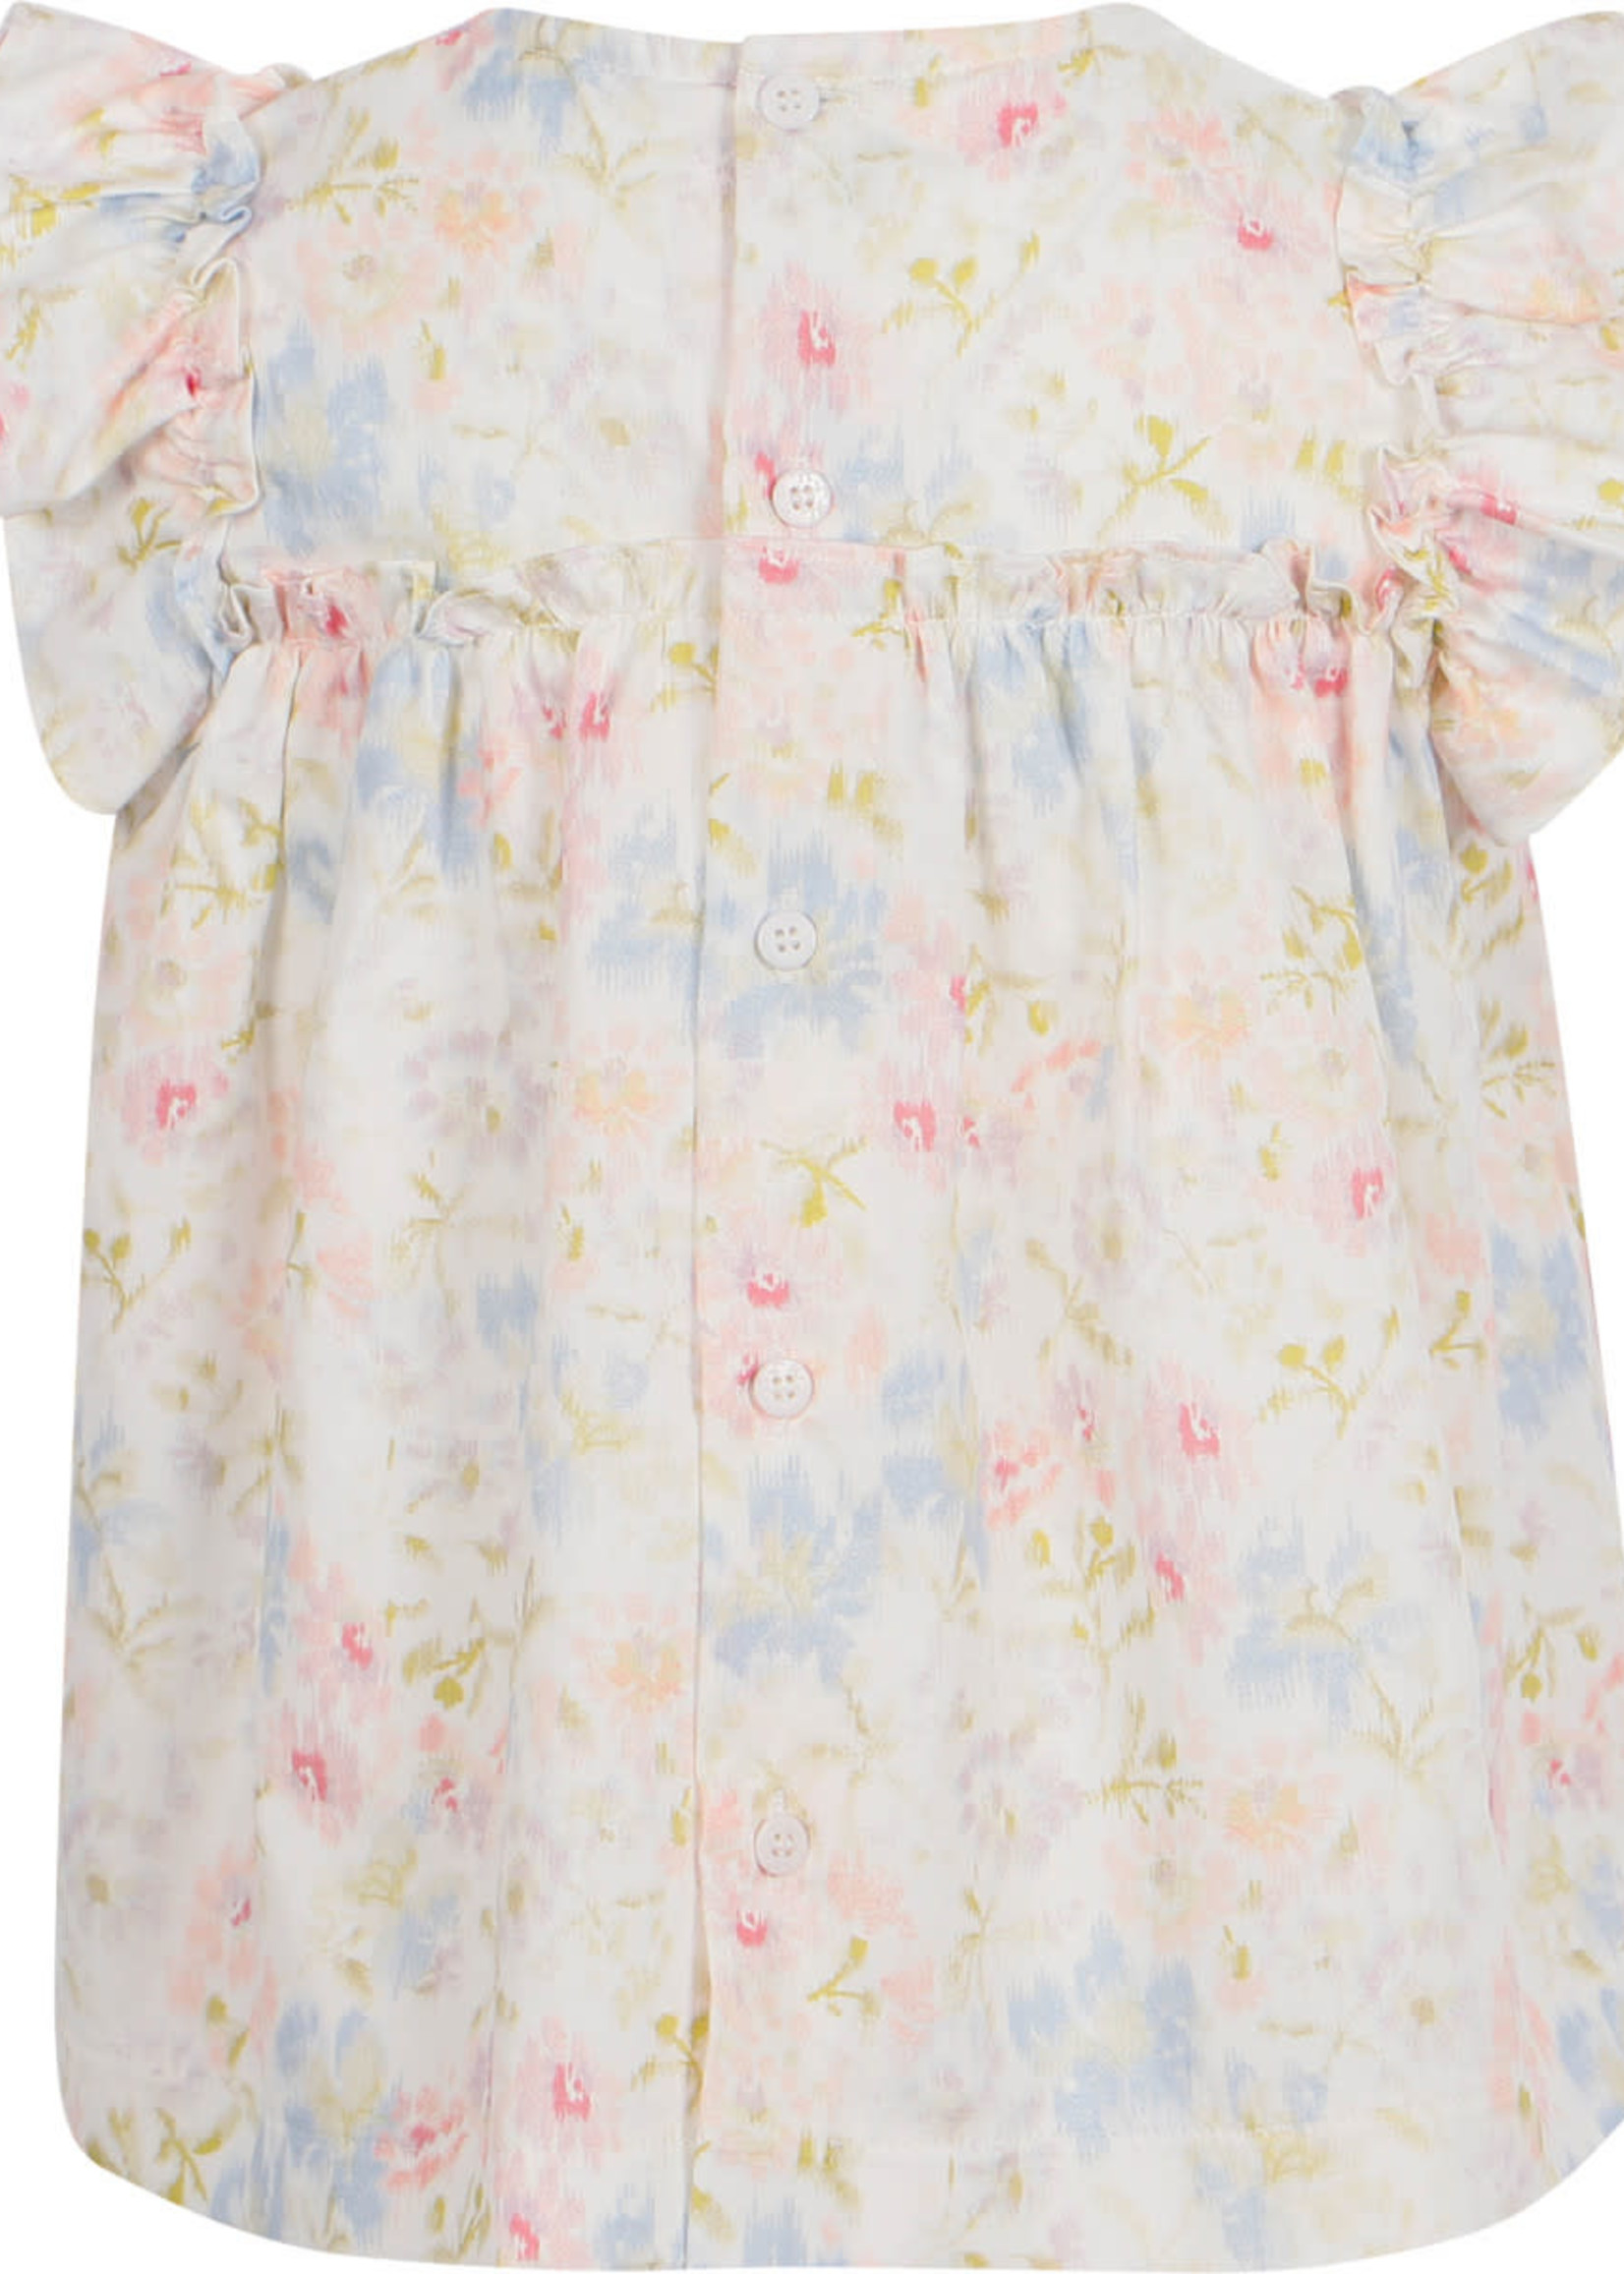 Il Gufo Il Gufo-ss21 Floral Dress Blouse and Shorts Set in White and Pink